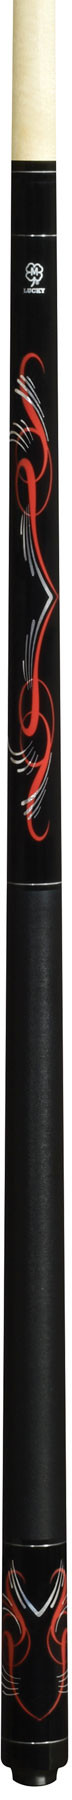 Lucky Pool Cue, L62, Black